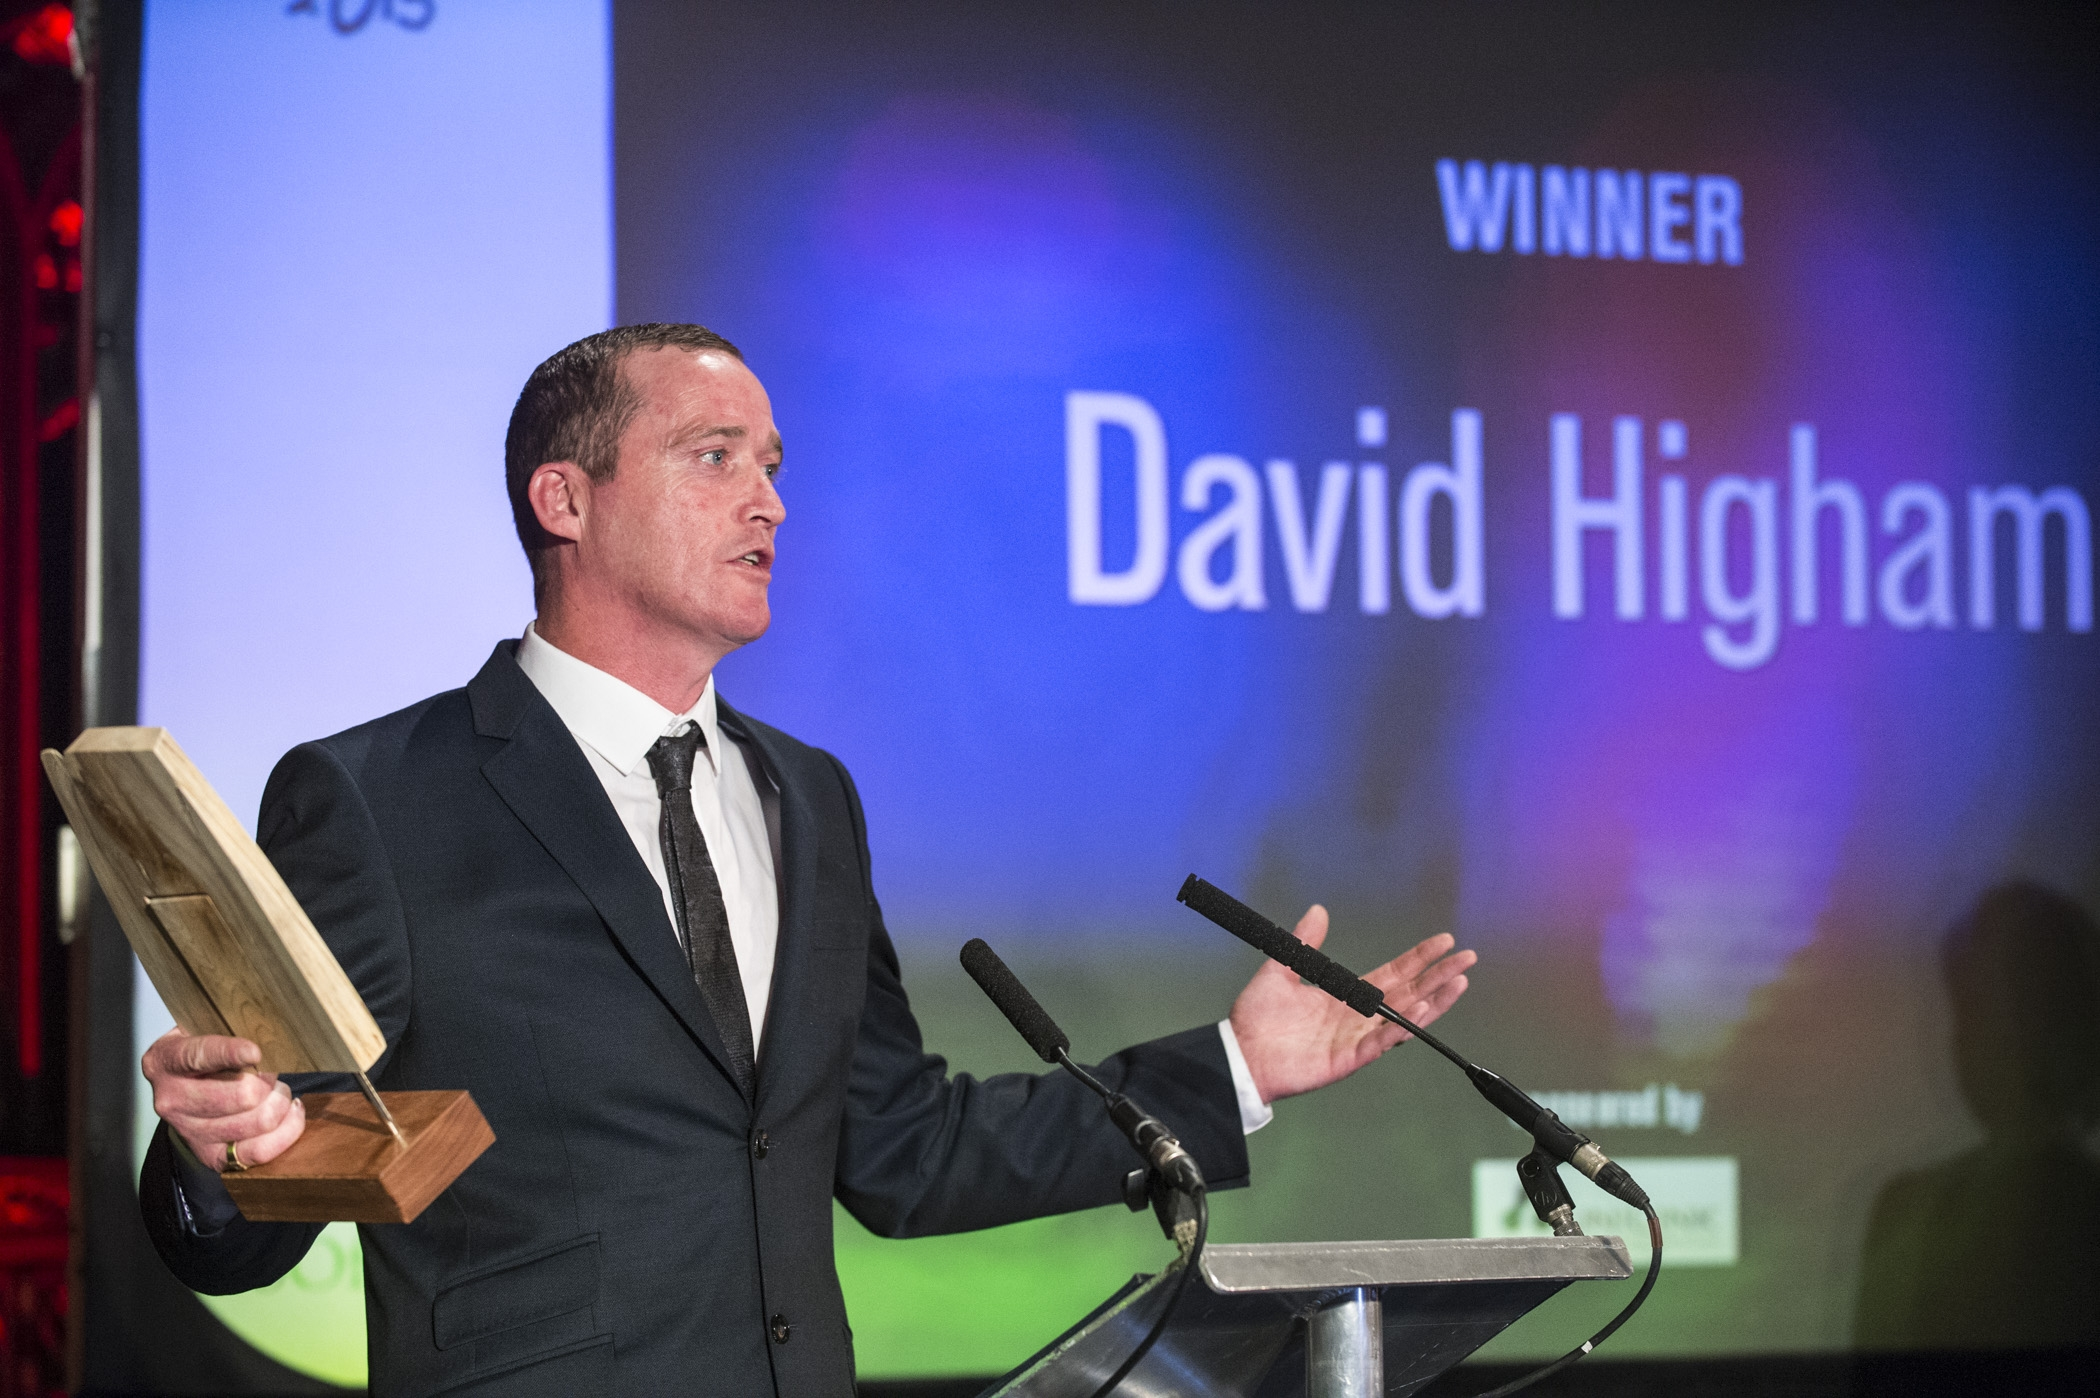 David Higham Chief Executive of The Well